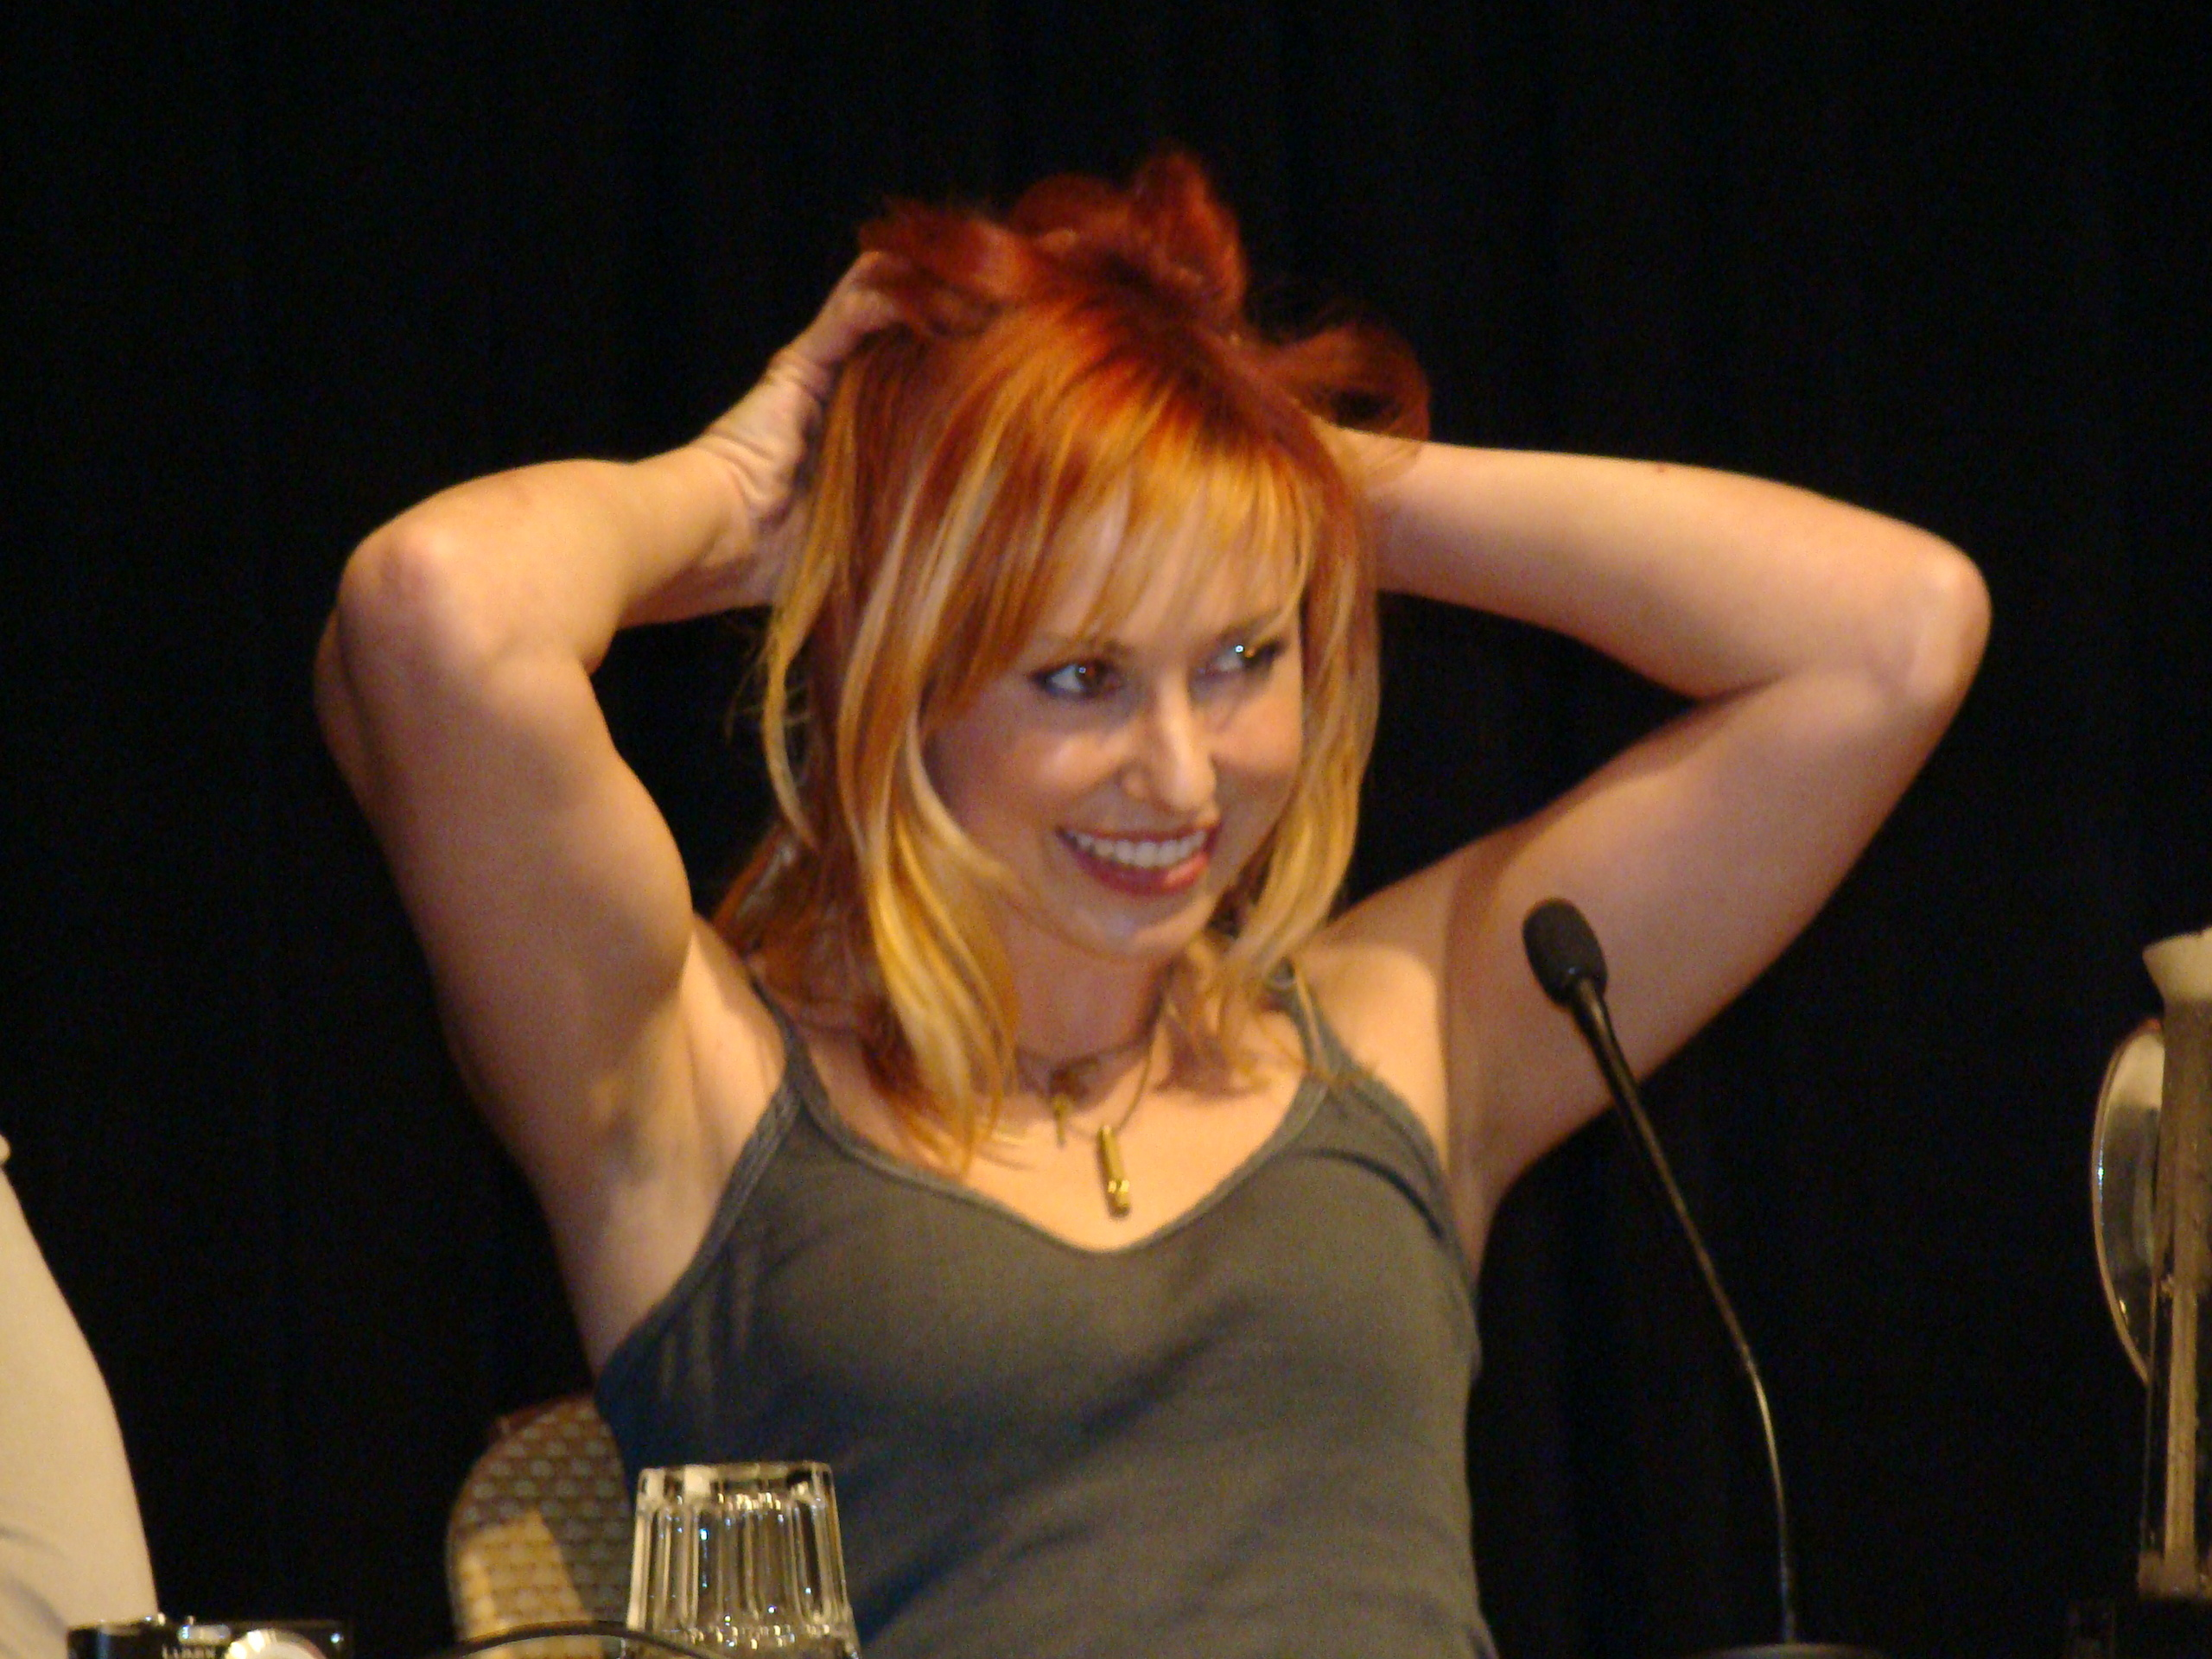 Kari byron sexy photos